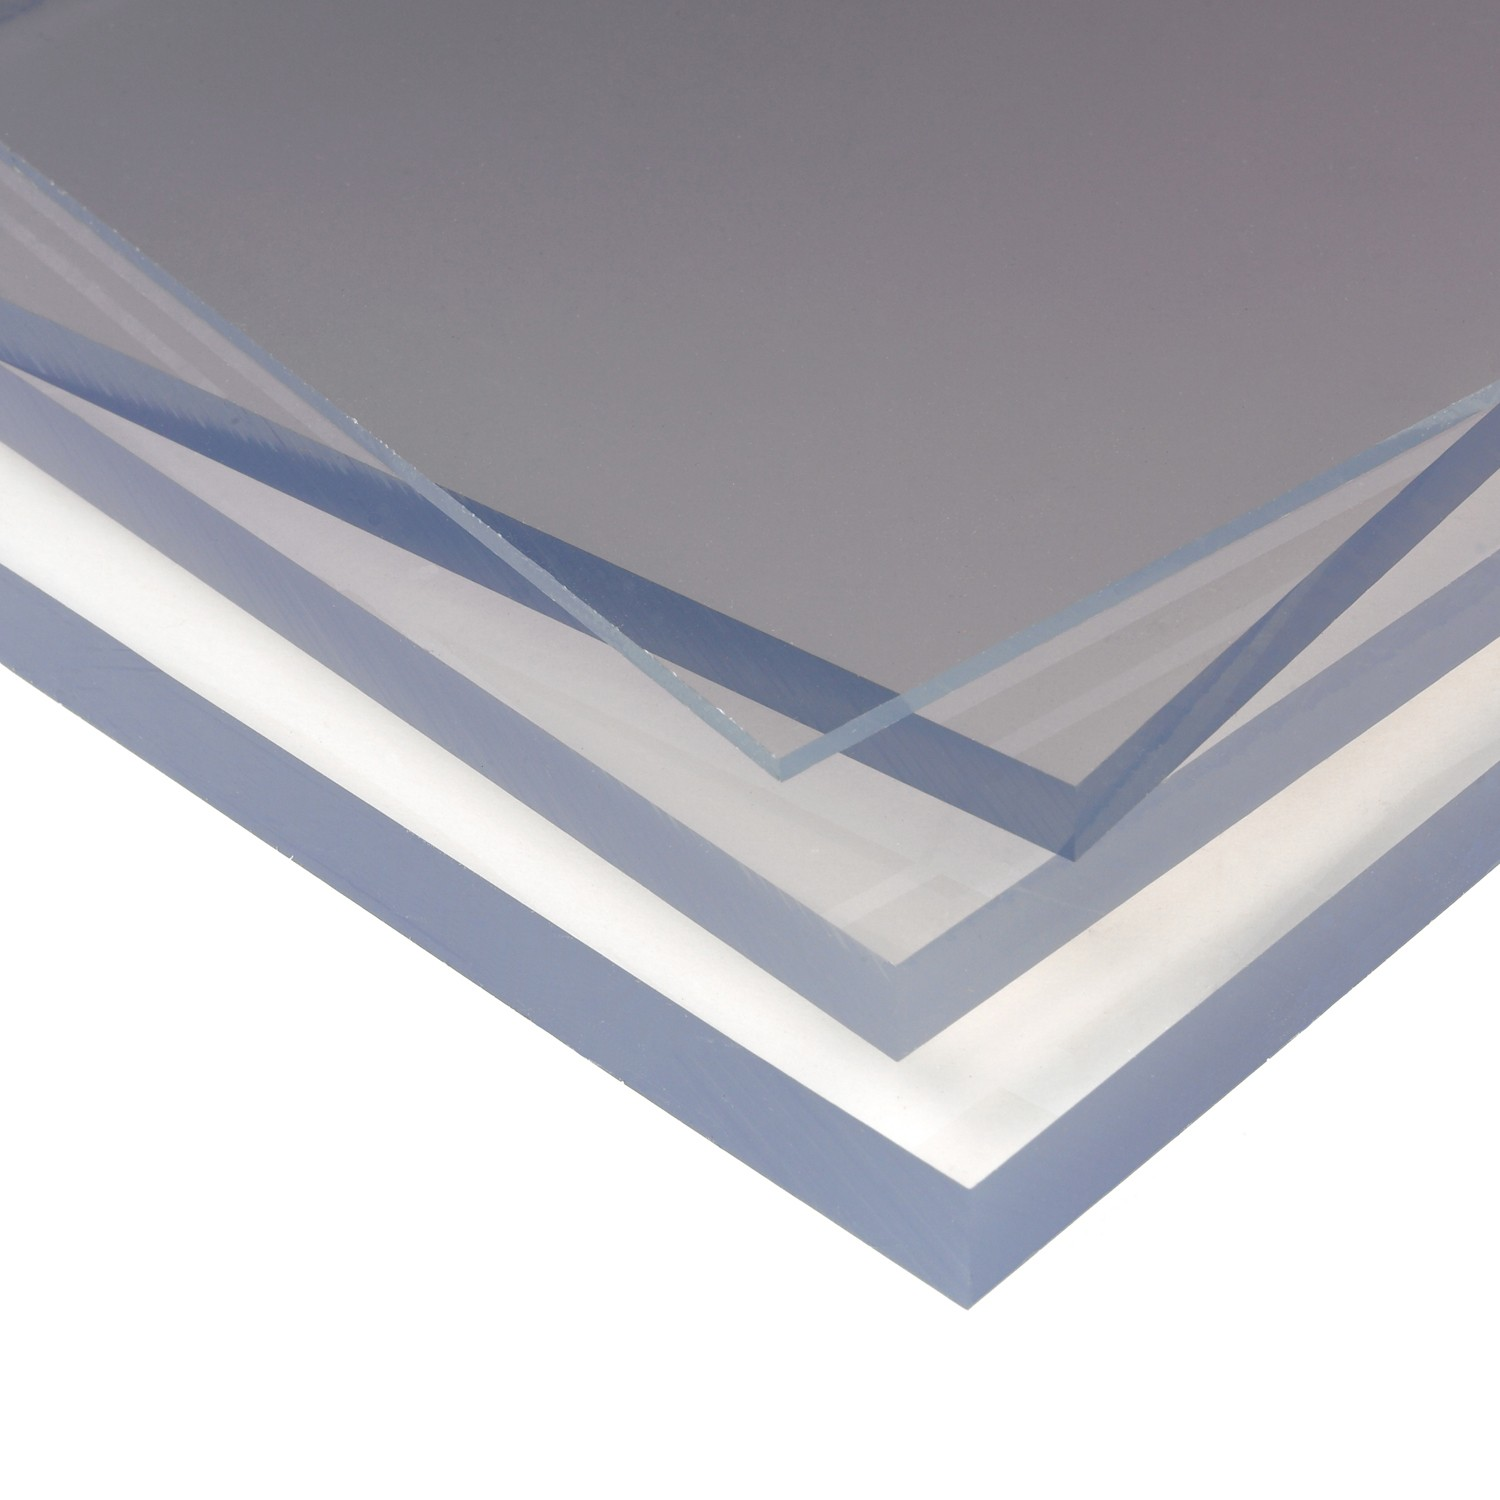 PSD 3mm A6 Size Solid Polycarbonate Plastic Sheet - Clear, 148mm x 105mm